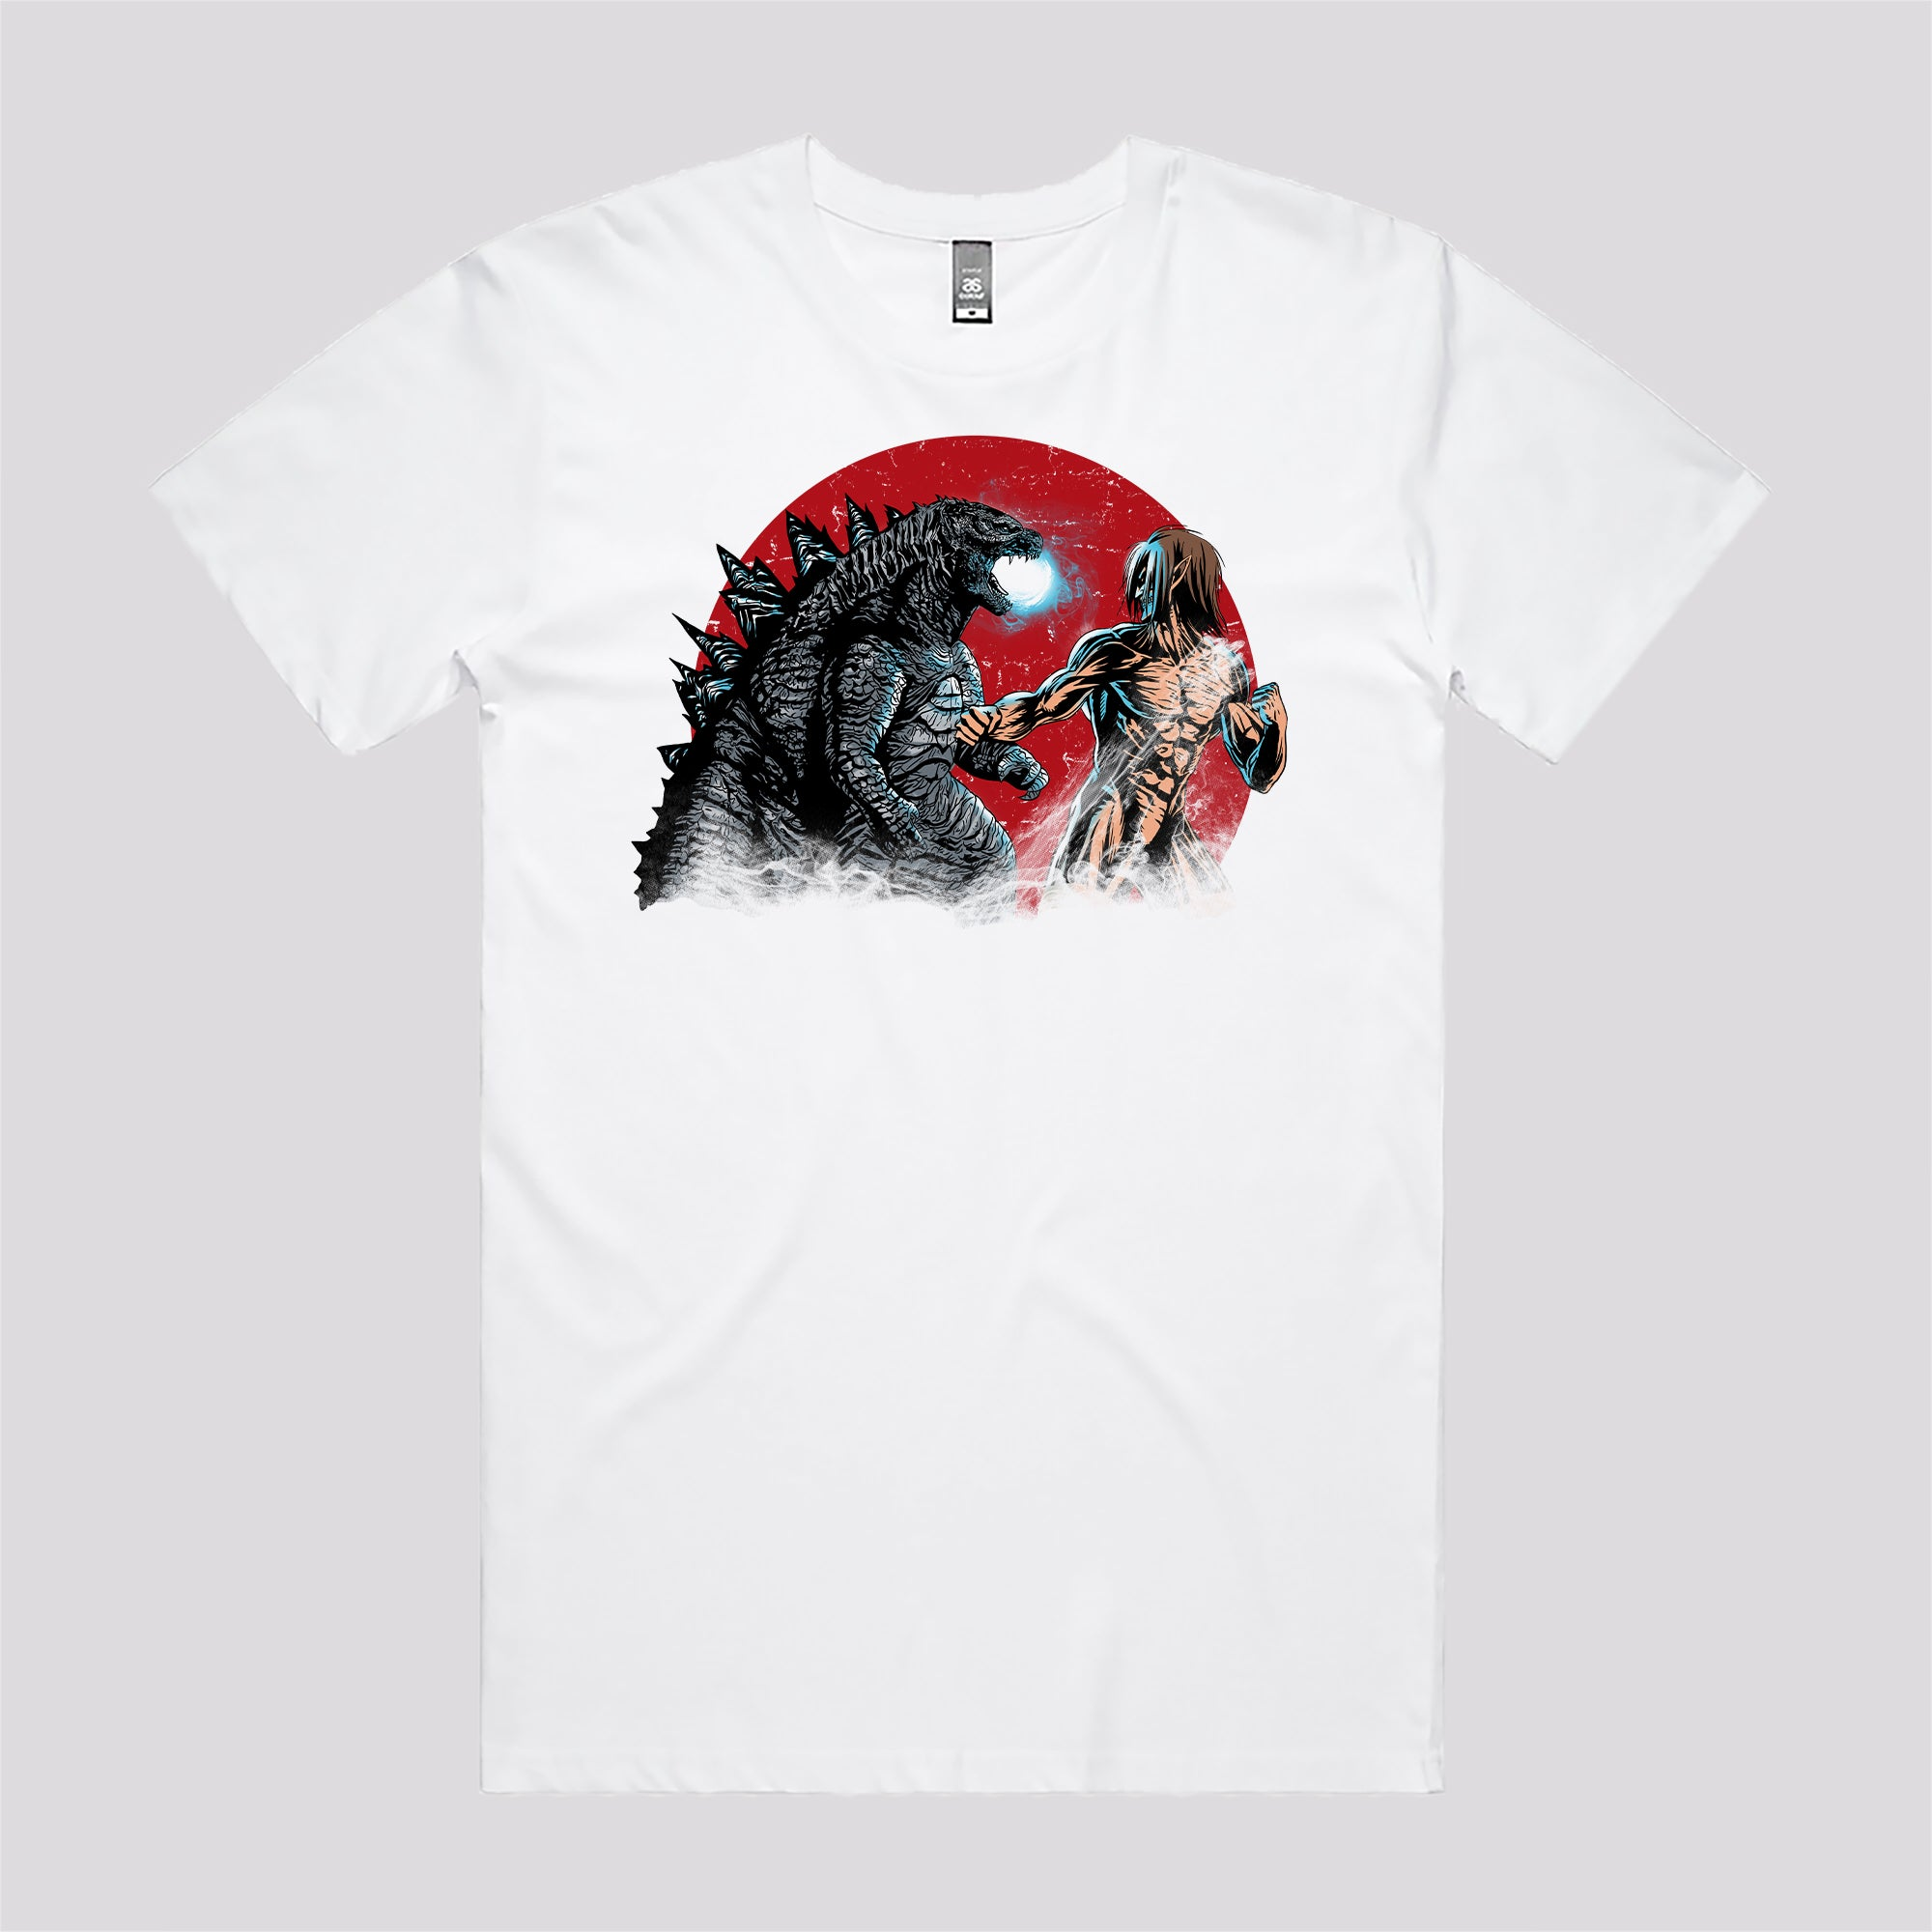 Kaiju vs Titan T-Shirt